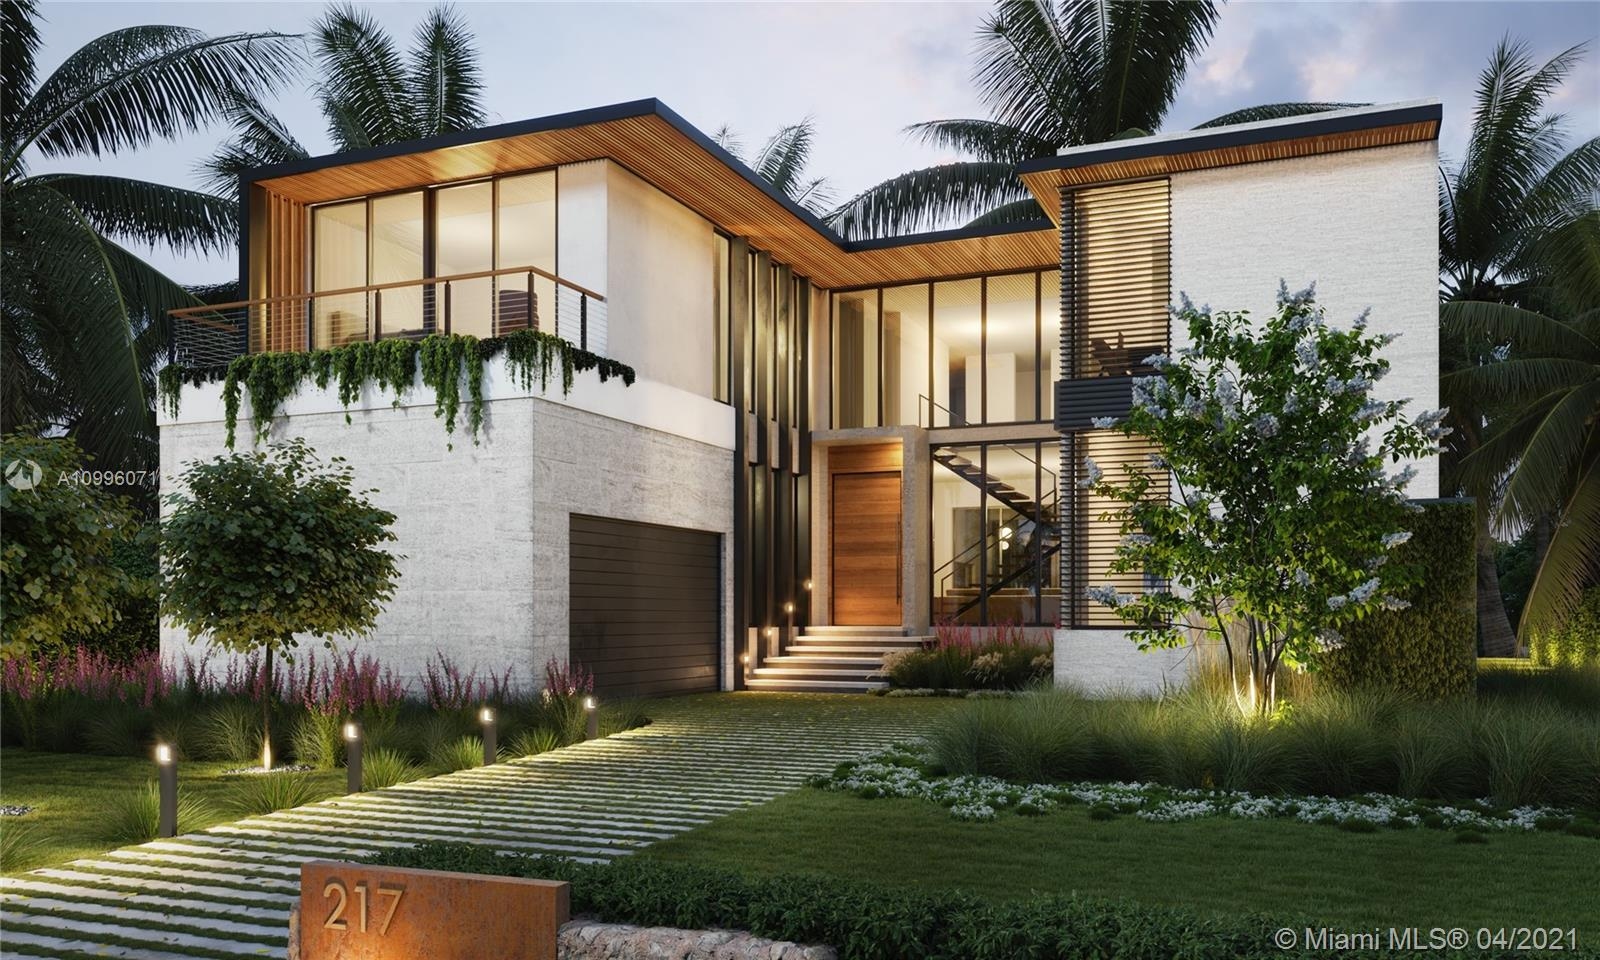 UNIQUE OPPORTUNITY TO OWN BRAND NEW CONSTRUCTION IN EXCLUSIVE BAL HARBOUR VILLAGE!! This Tropical Modern luxury residence is located in the private, guard-gated enclave of Bal Harbour Village. Designed for modern living, this customizable 6,866 SF home features seamless indoor/outdoor living with 6 BR/6.5 BTH, floor-to-ceiling glass walls, a sculptural floating staircase, and a stunning entry courtyard with a 30-ft tall green living wall. Other amenities include: Italian chef's kitchen equipped with Wolf and Subzero appliances, resort-style salt water pool, summer kitchen, second level den/office space, and more. Exquisite finishes throughout including exotic hardwoods and natural stone...this is ultra-luxury living! Expected completion Q1 2022.  Contact Listing Agent for more information.